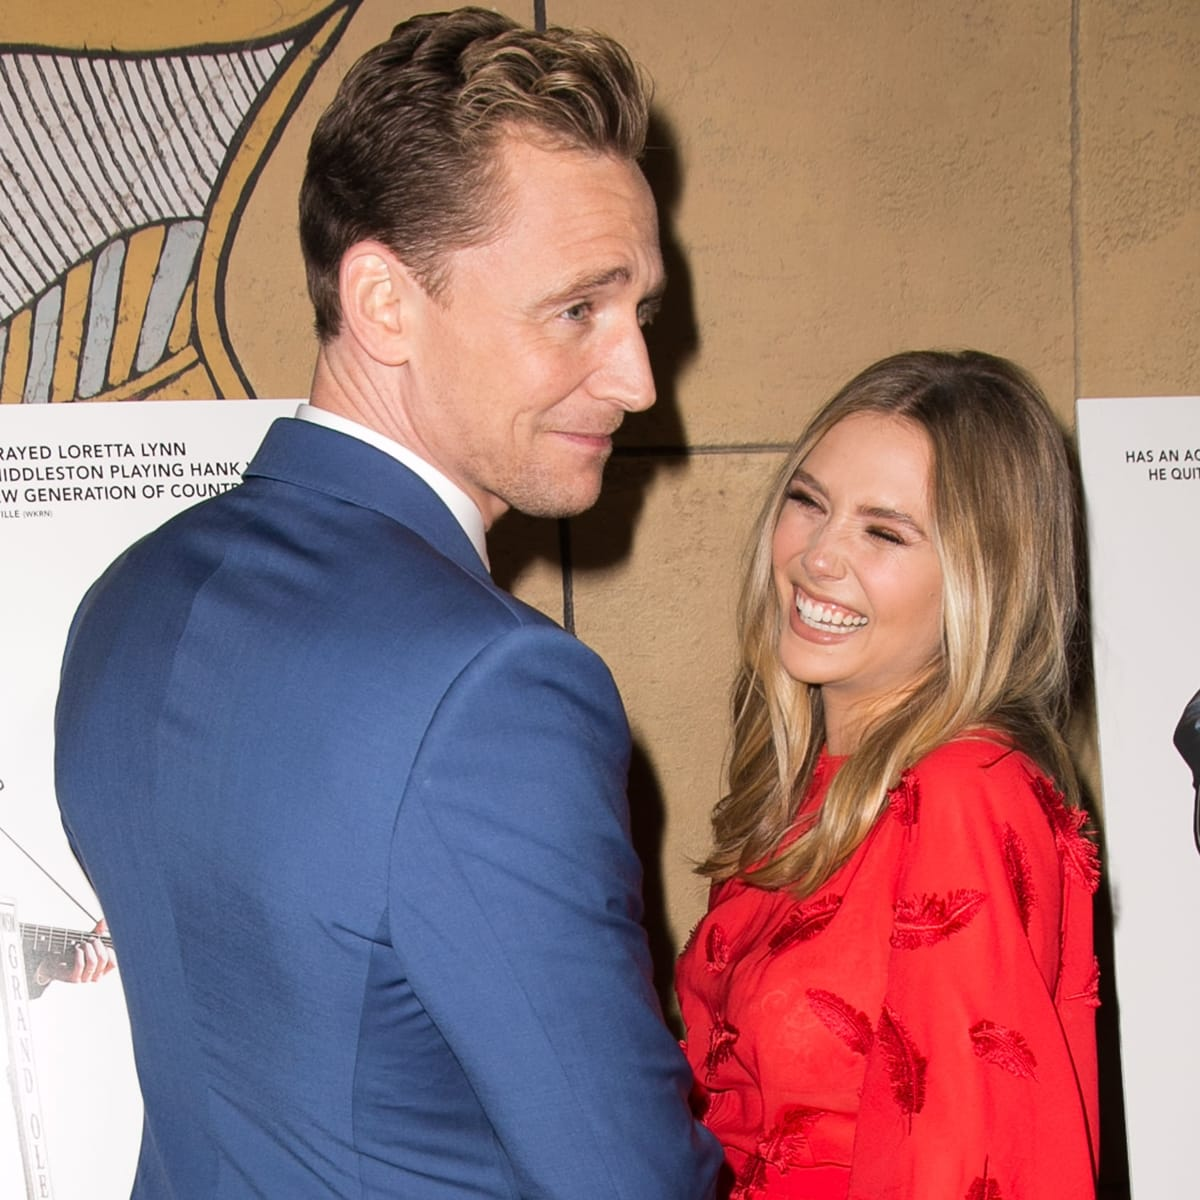 Elizabeth Olsen claims not to have dated Tom Hiddleston and that they're just friends